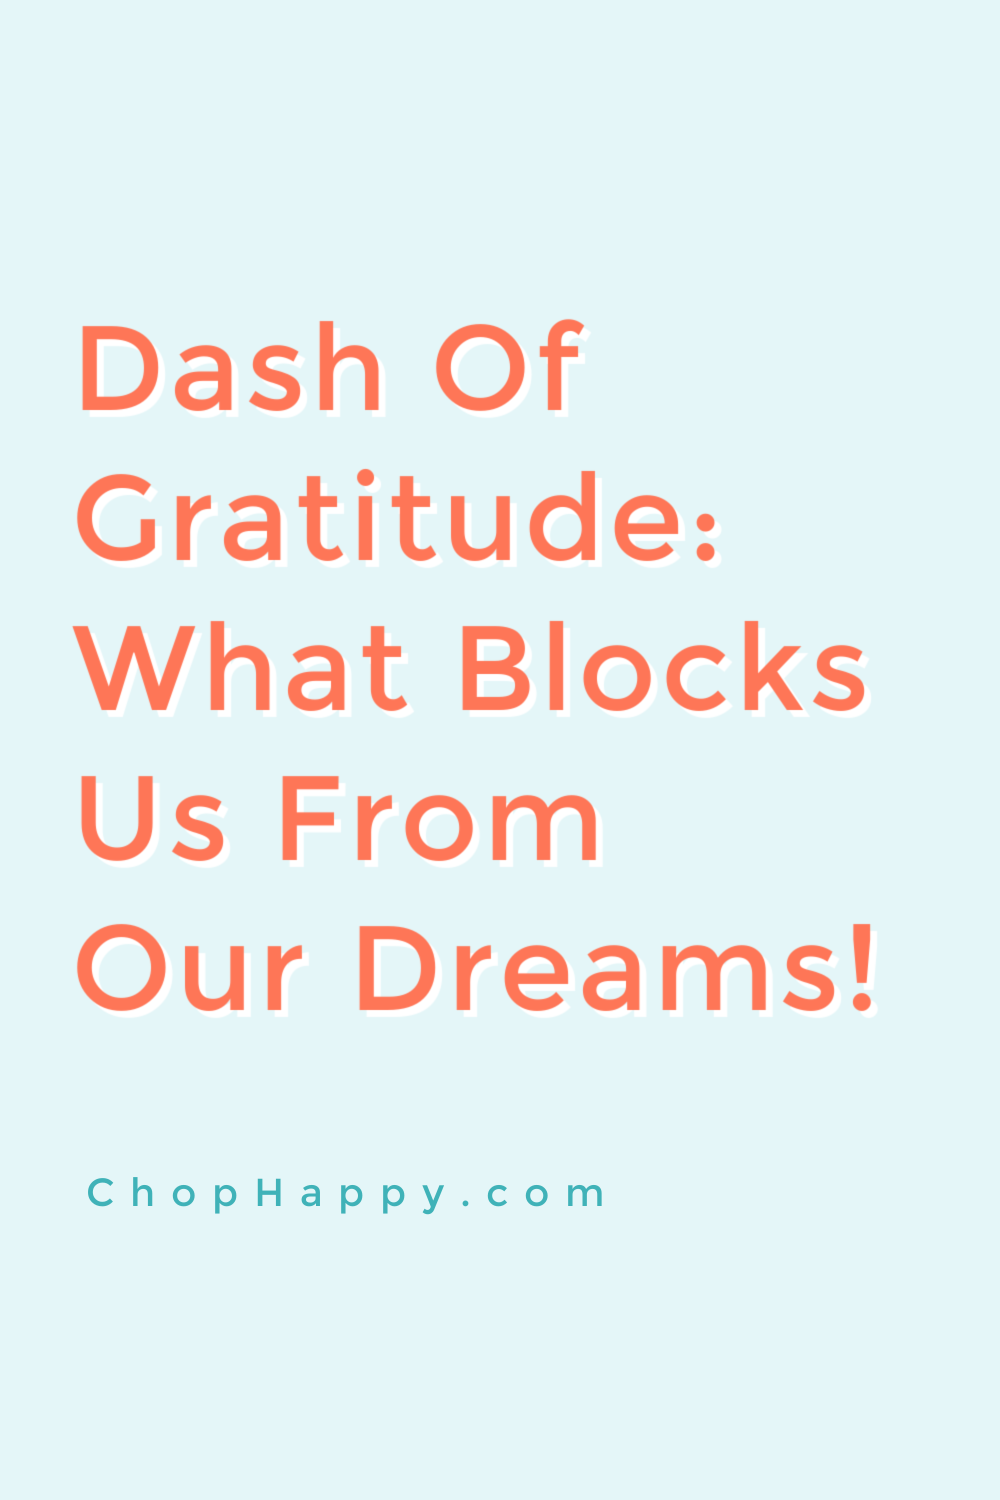 Dash of Gratitude: What Blocks Us From Our Dreams. The law of attraction helps you focus on what you want. www.ChopHappy.com #Gratitude #LawofAttraction